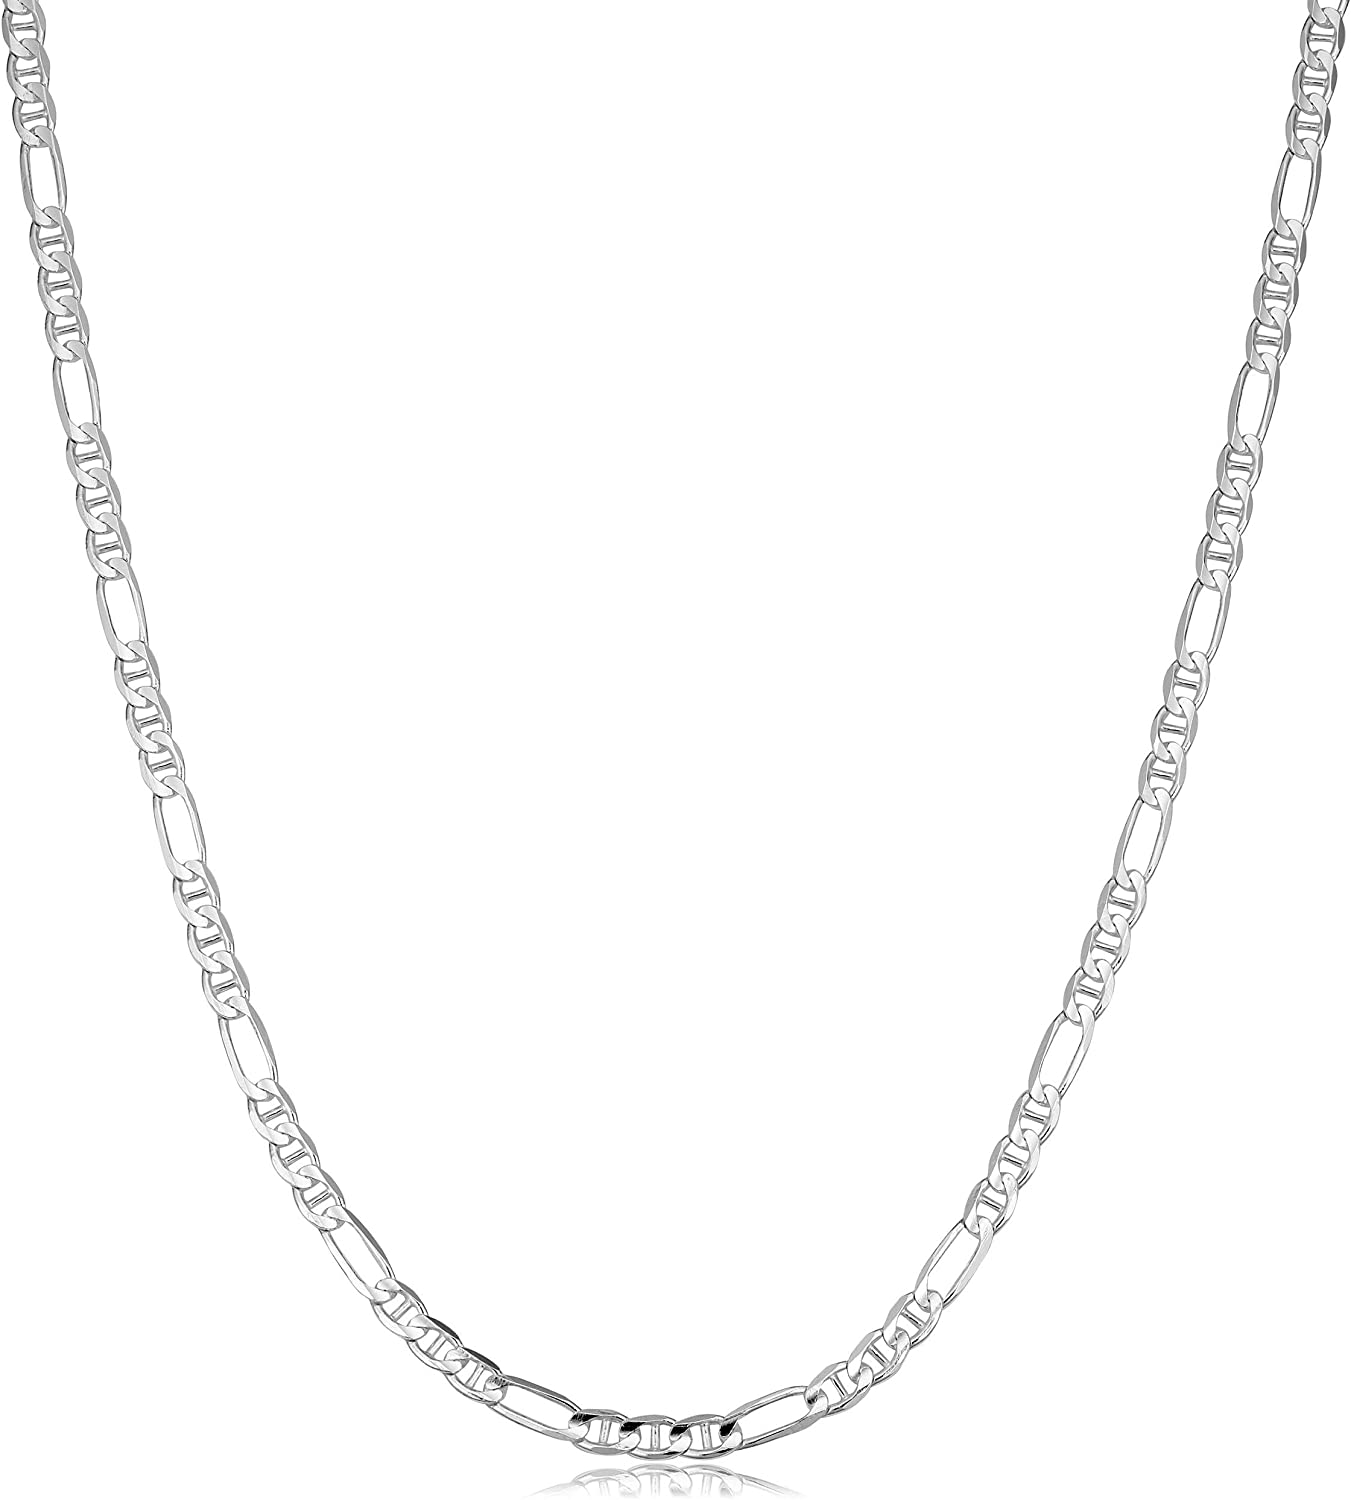 Verona Sale special price Jewelers overseas Solid 925 Sterling Necklace Figarucci 3M Silver